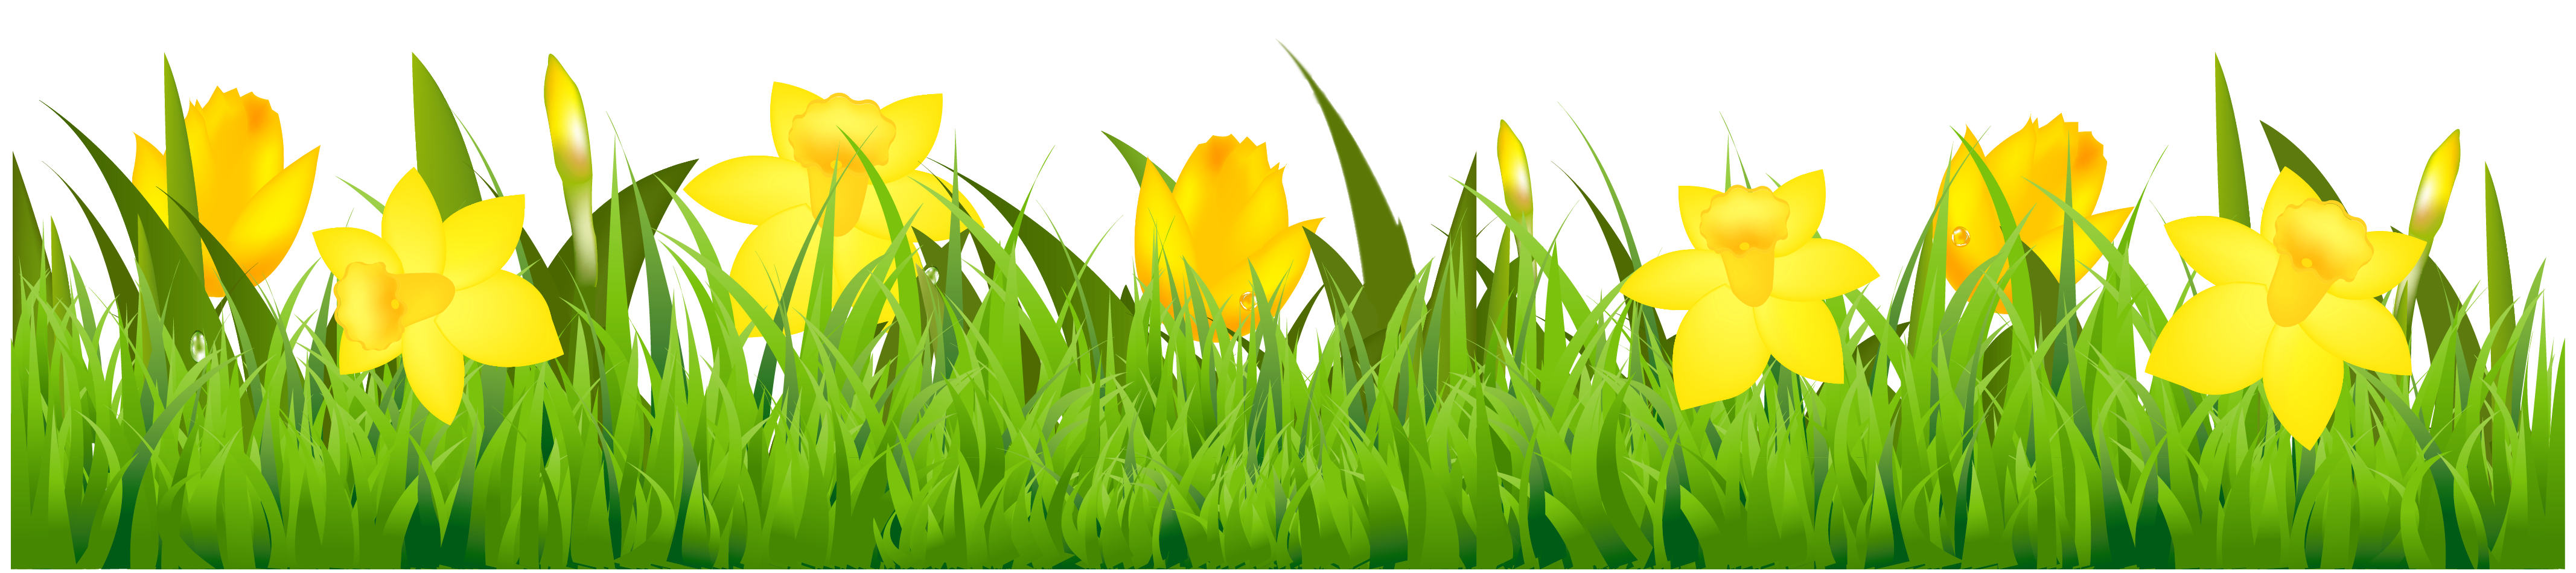 Of flowers google search. Grass clipart spring